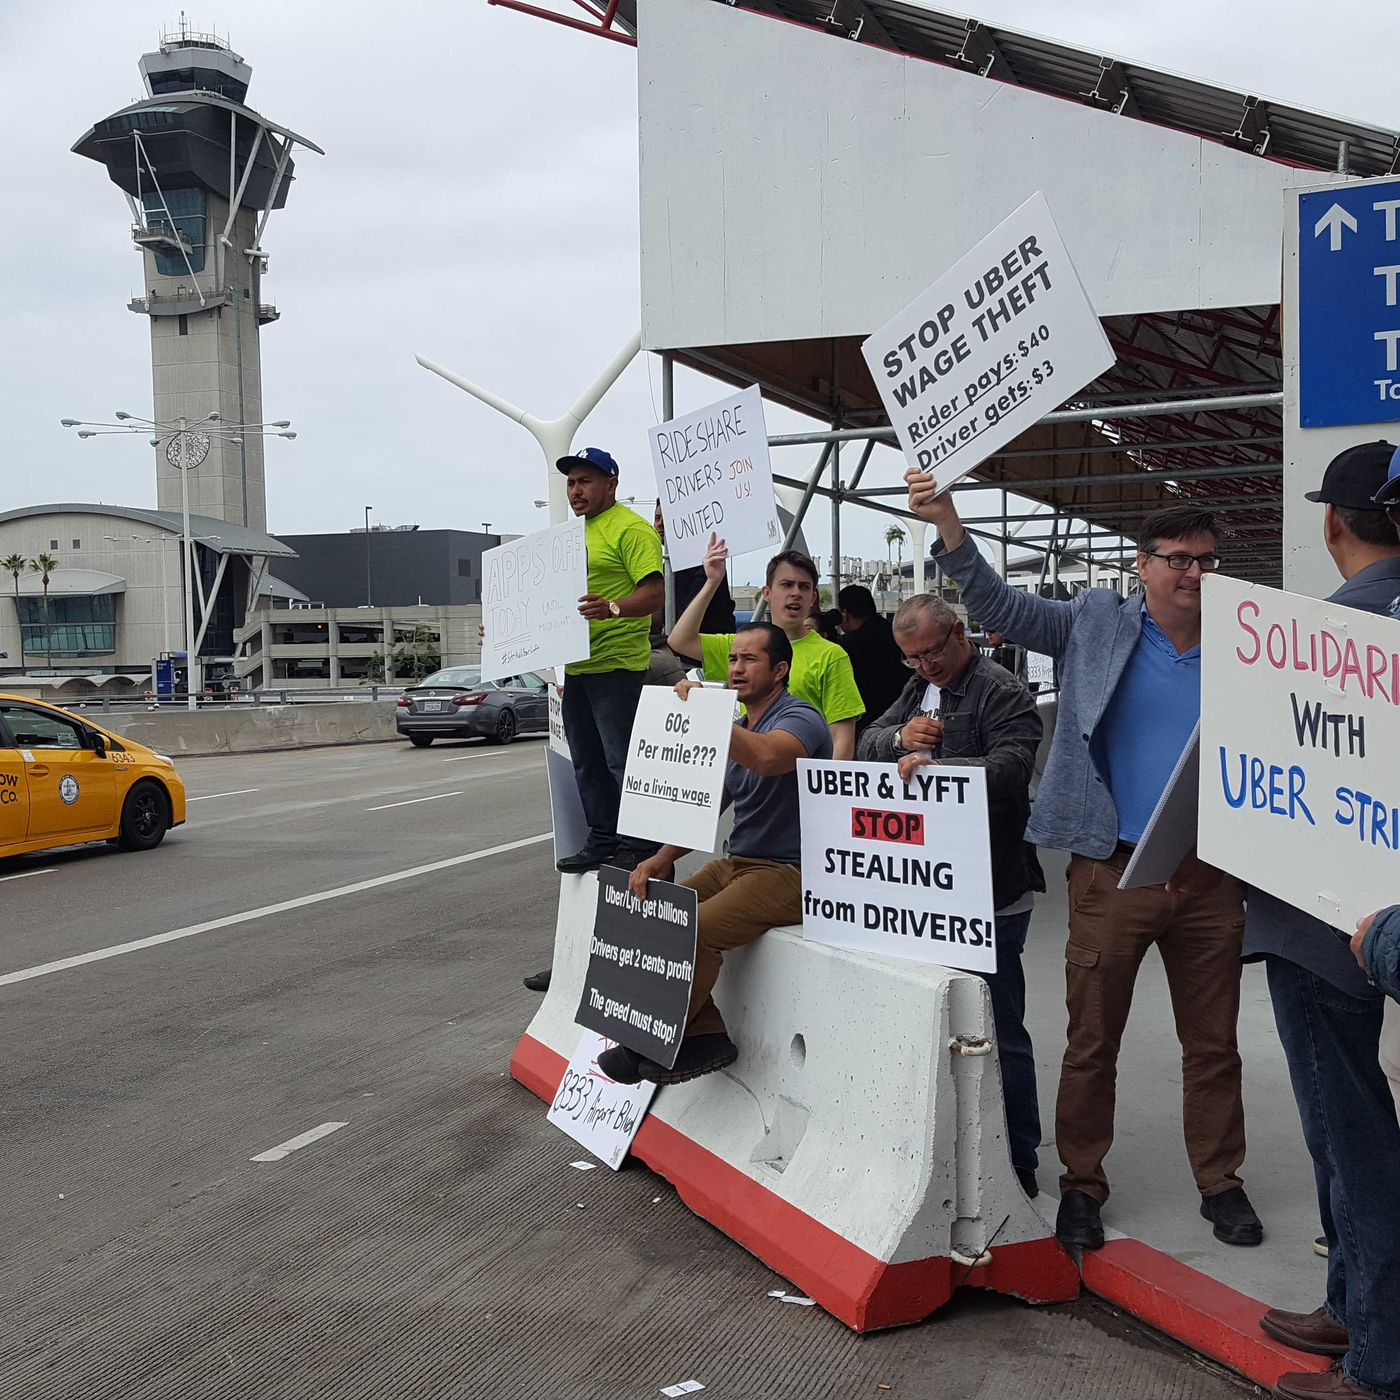 Uber drivers will strike at LAX before IPO - Curbed LA